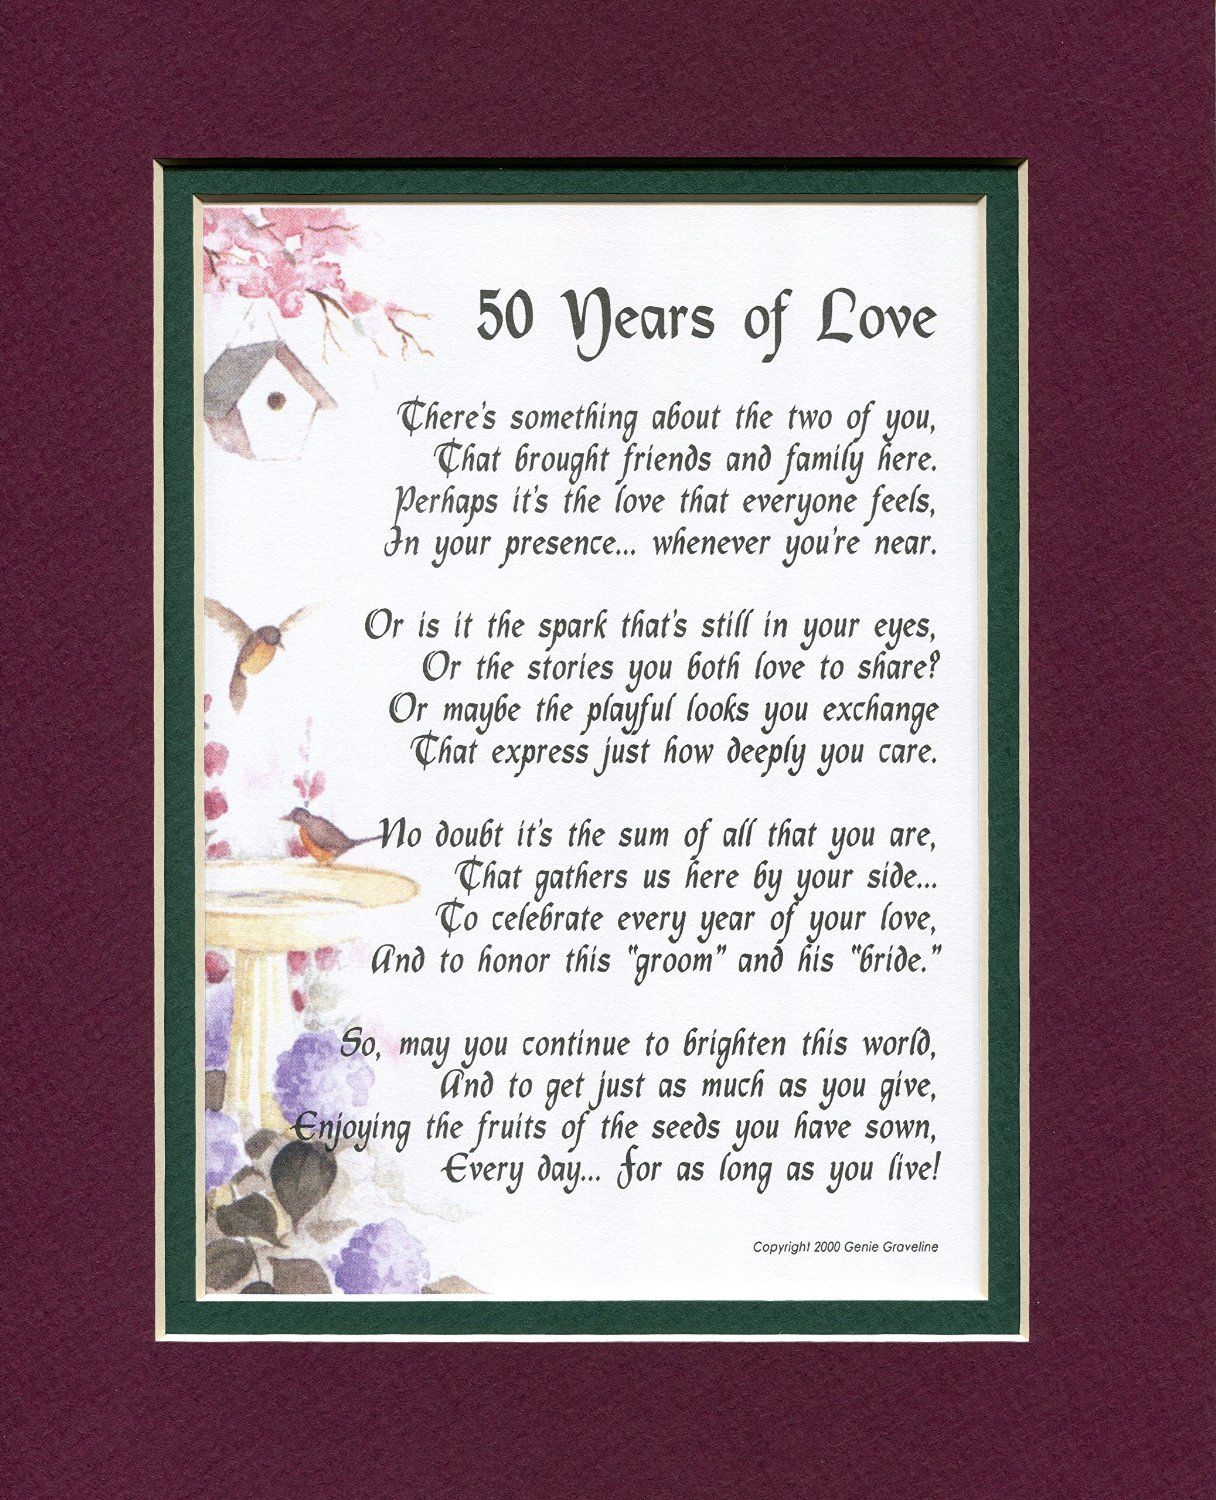 50 Years of Love, 119, Touching Poem. A Gift